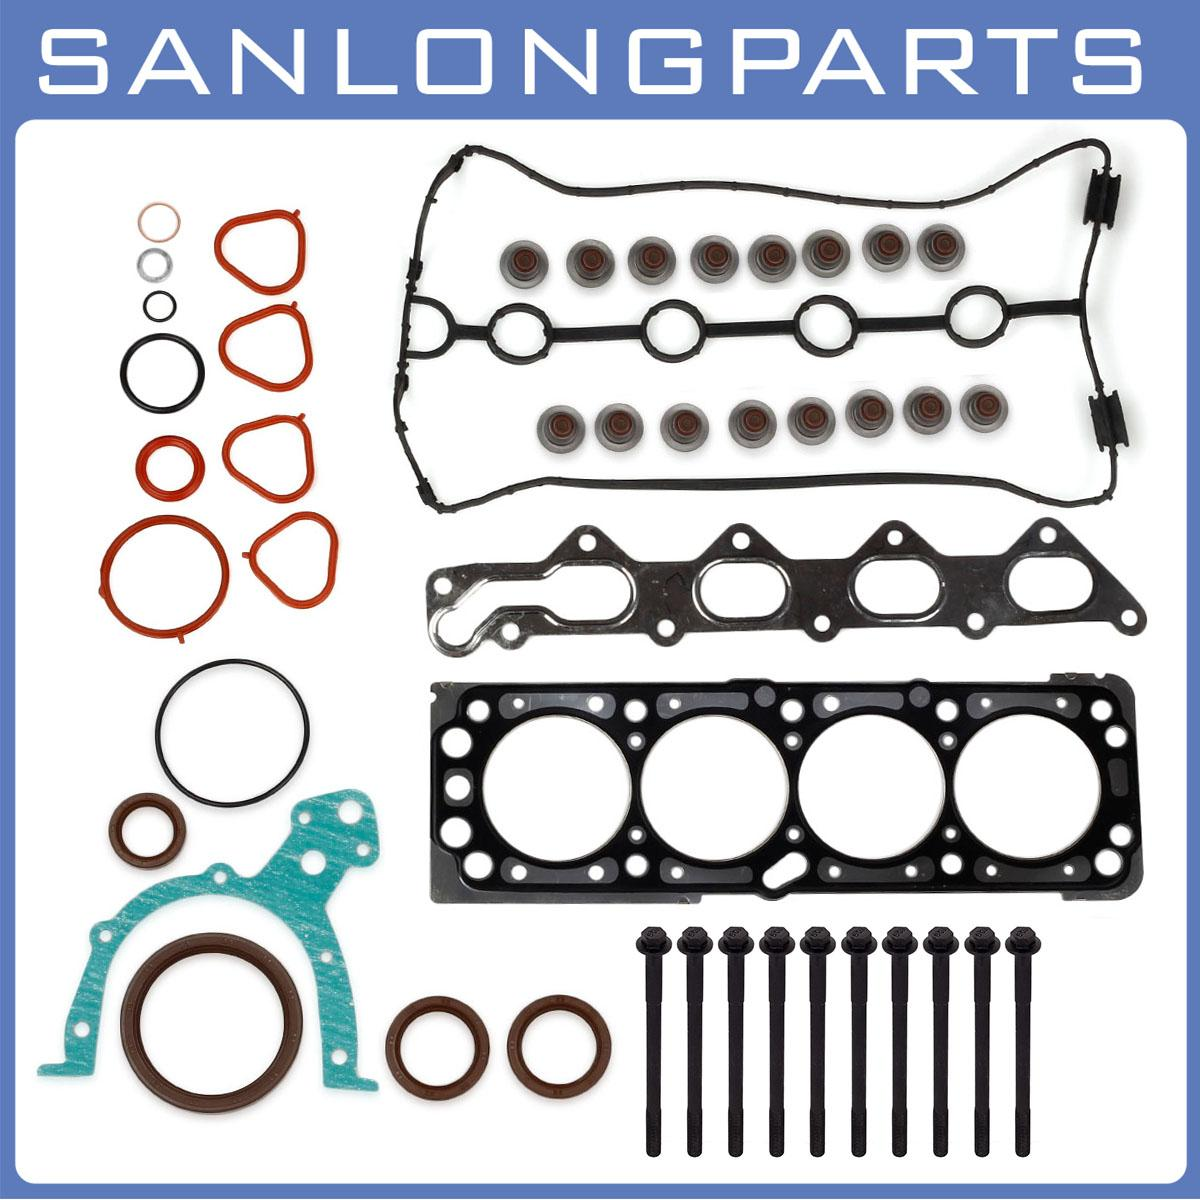 Bad Timing Cover Gasket Symptoms – Autocars